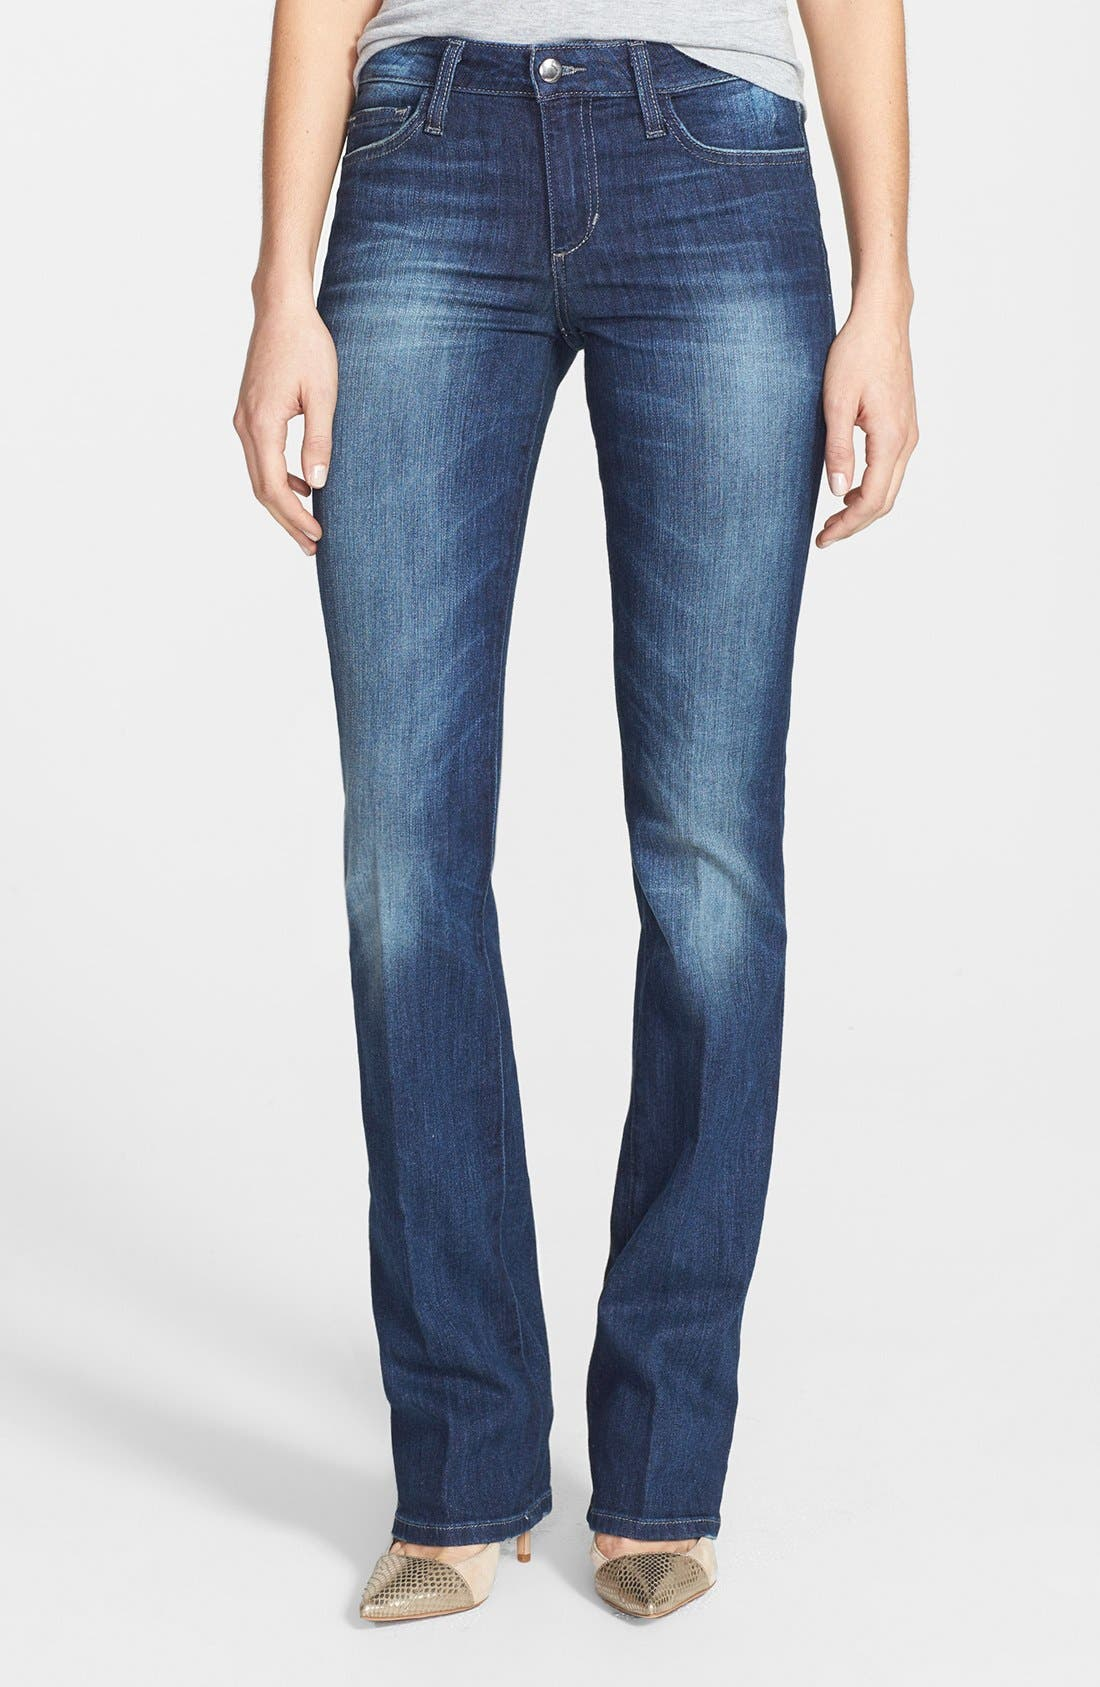 Alternate Image 1 Selected - Joe's Curvy Mini Bootcut Jeans (April)